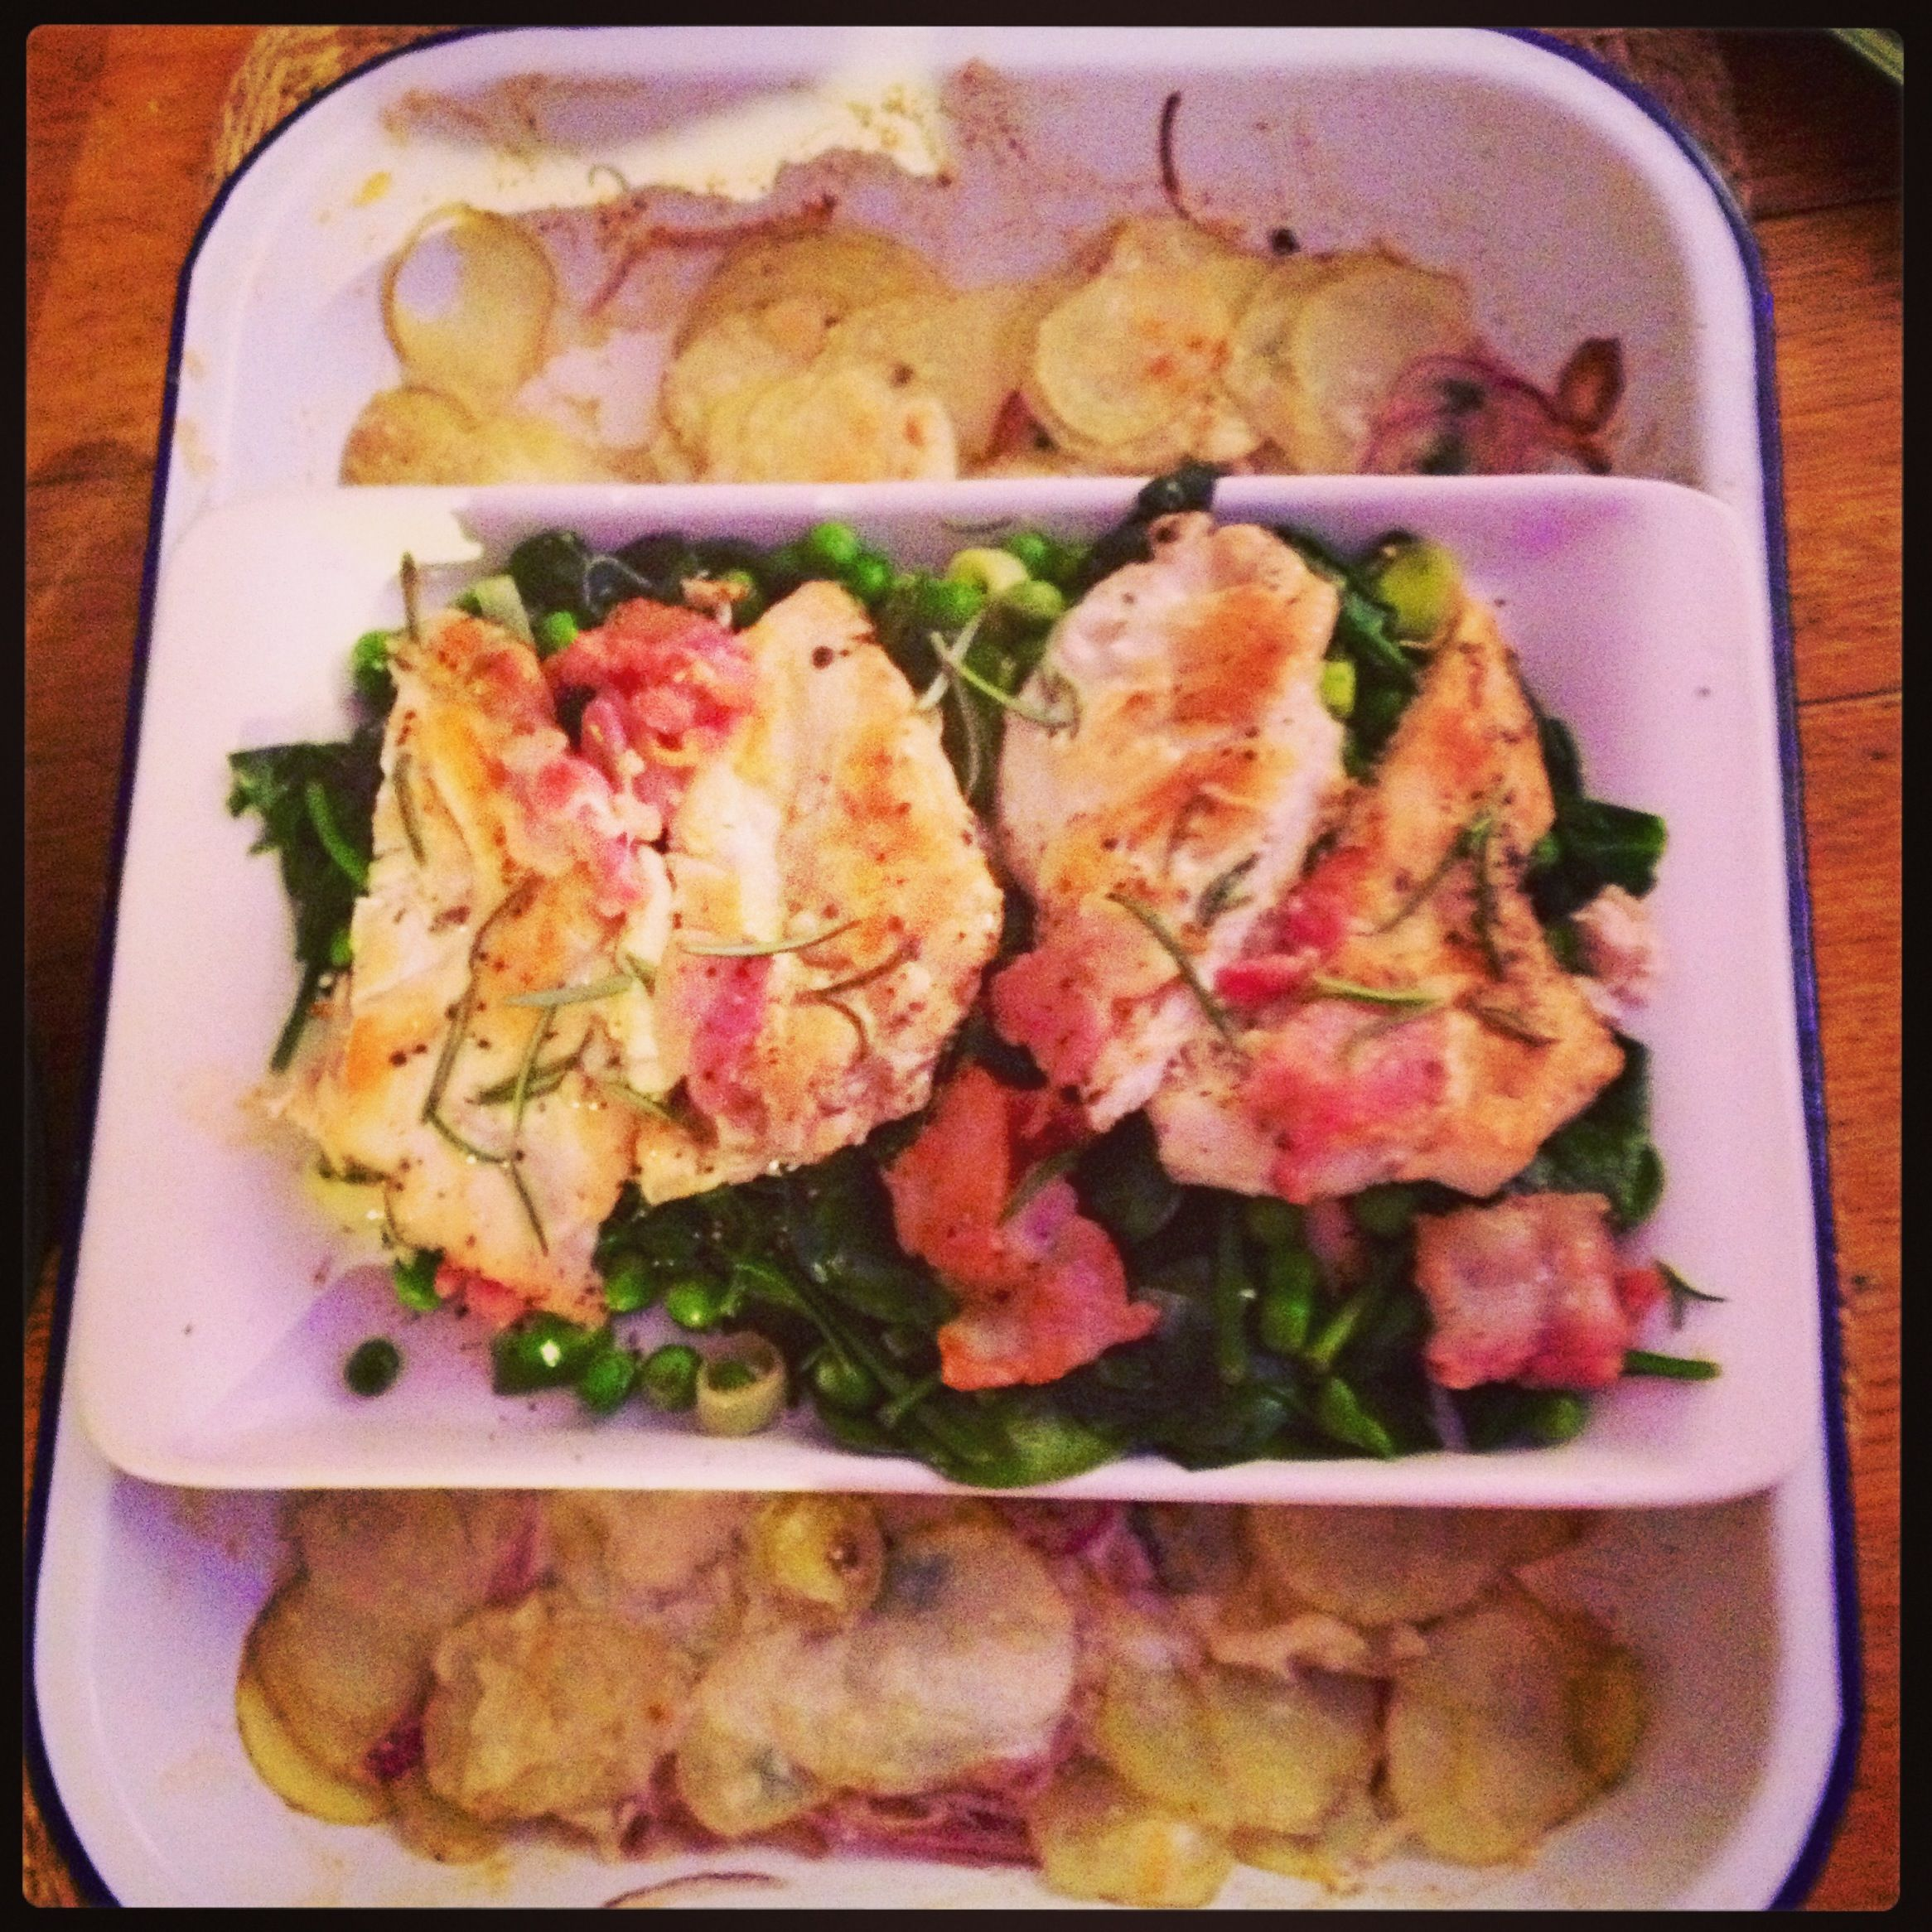 Pin by Mila Statham on Jamie's 15 Minute Meals | Pinterest